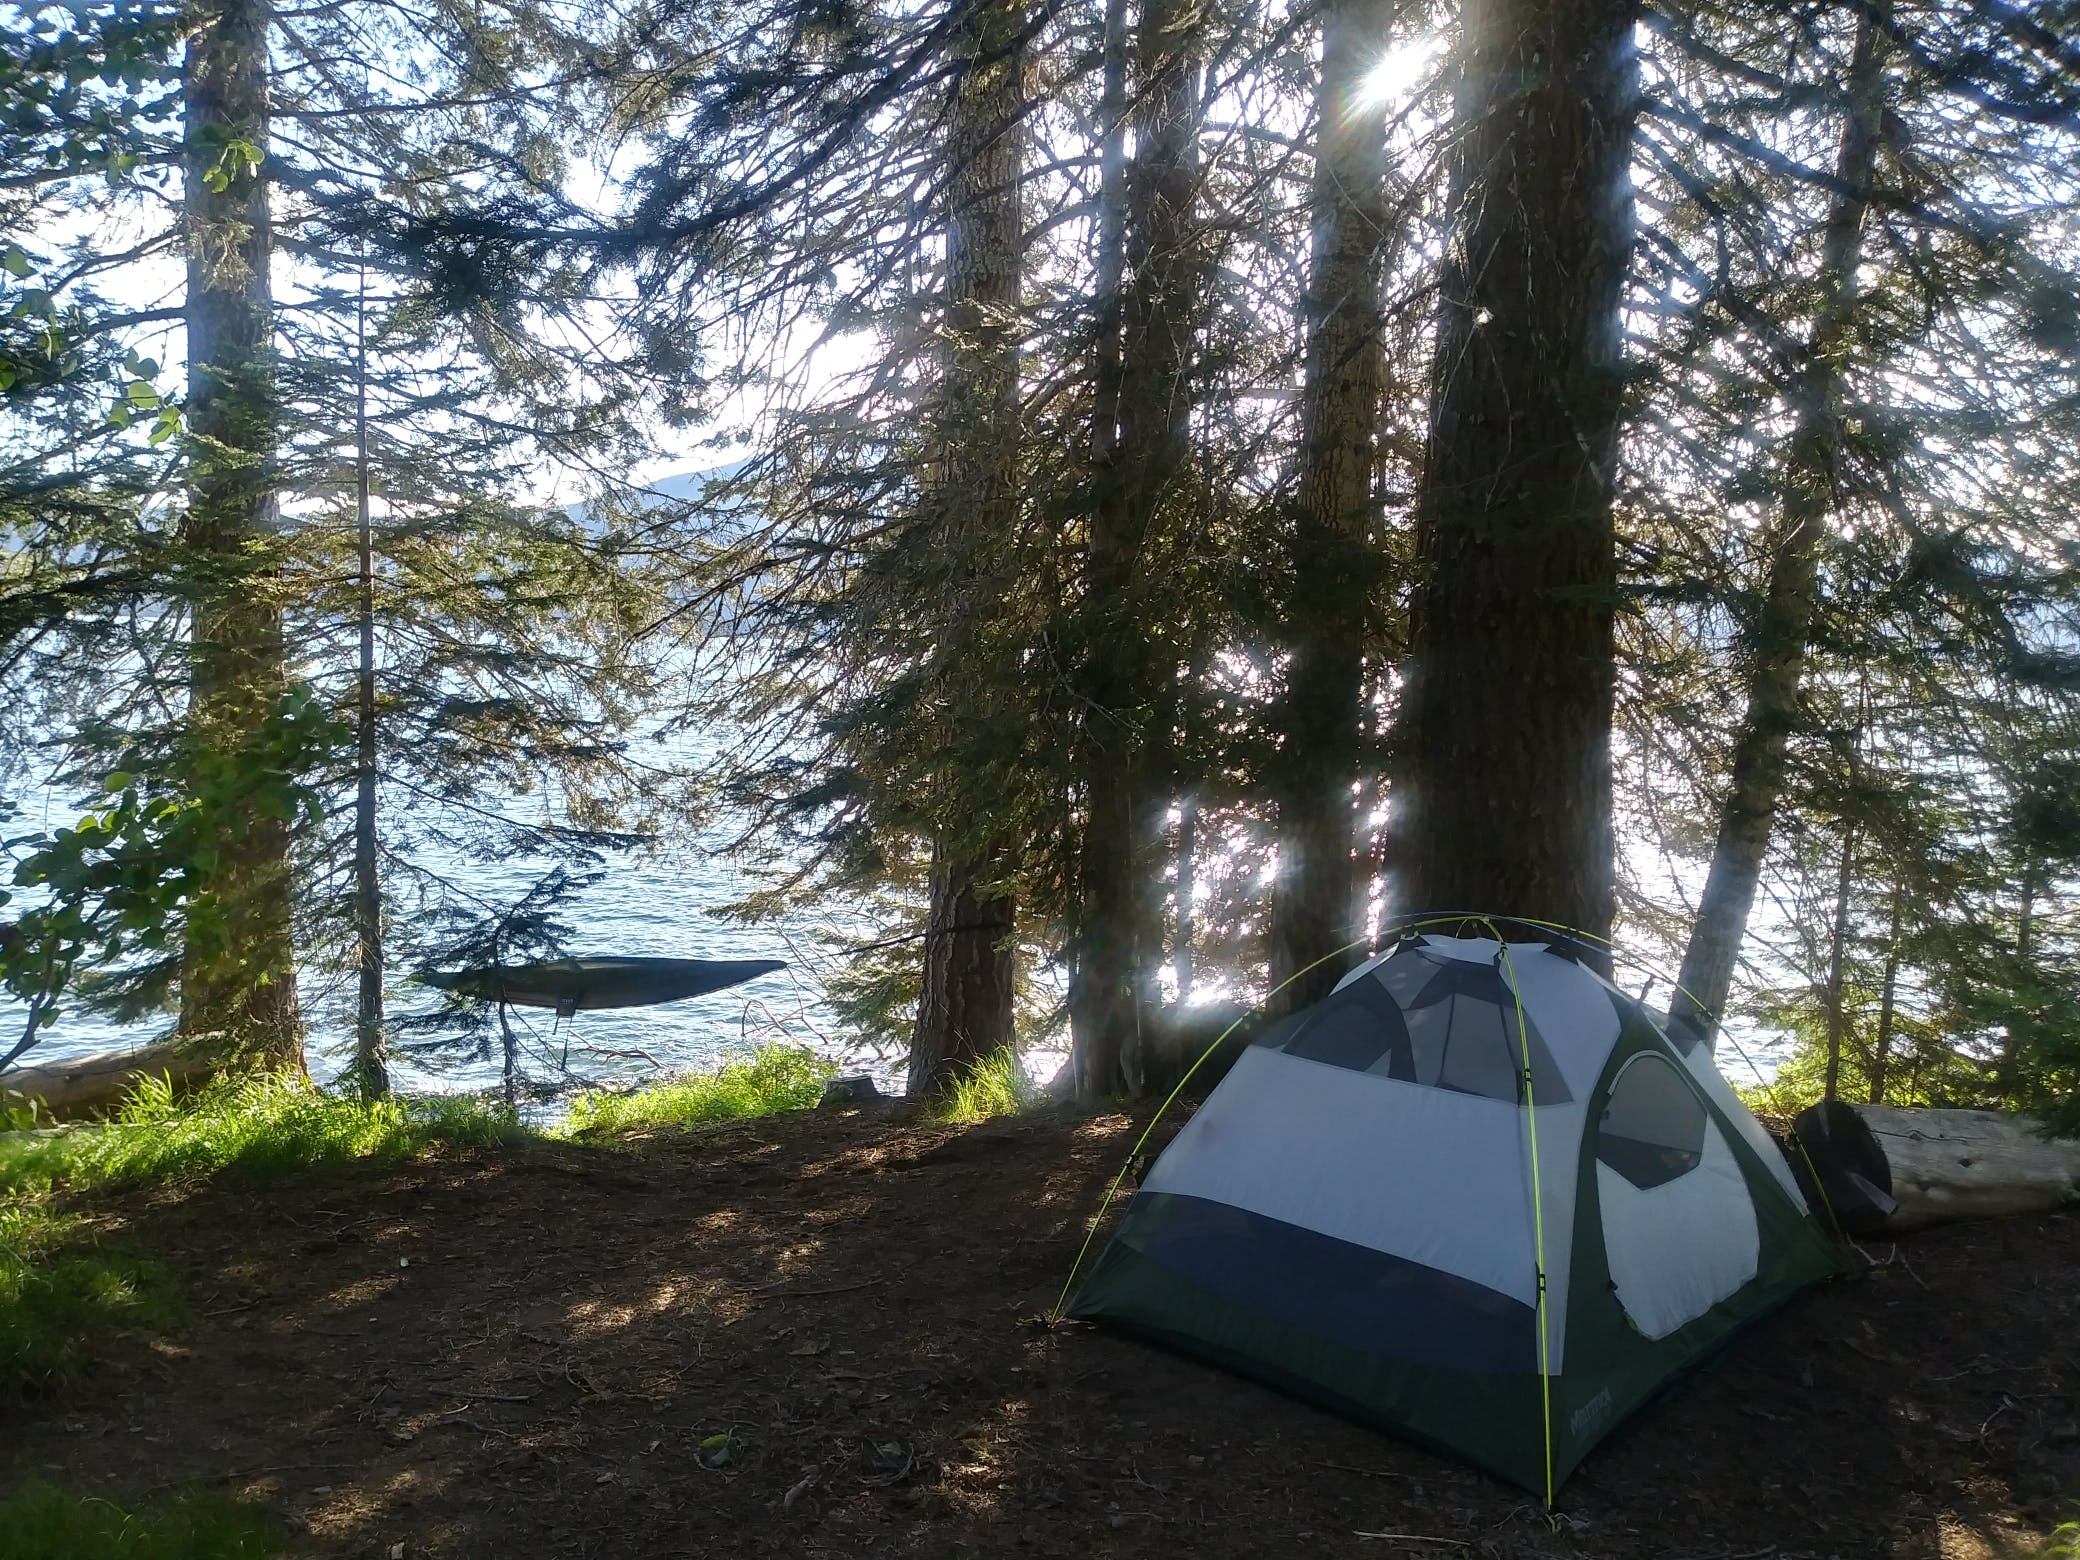 Diamond Lake Campground - Camping in Southern Oregon